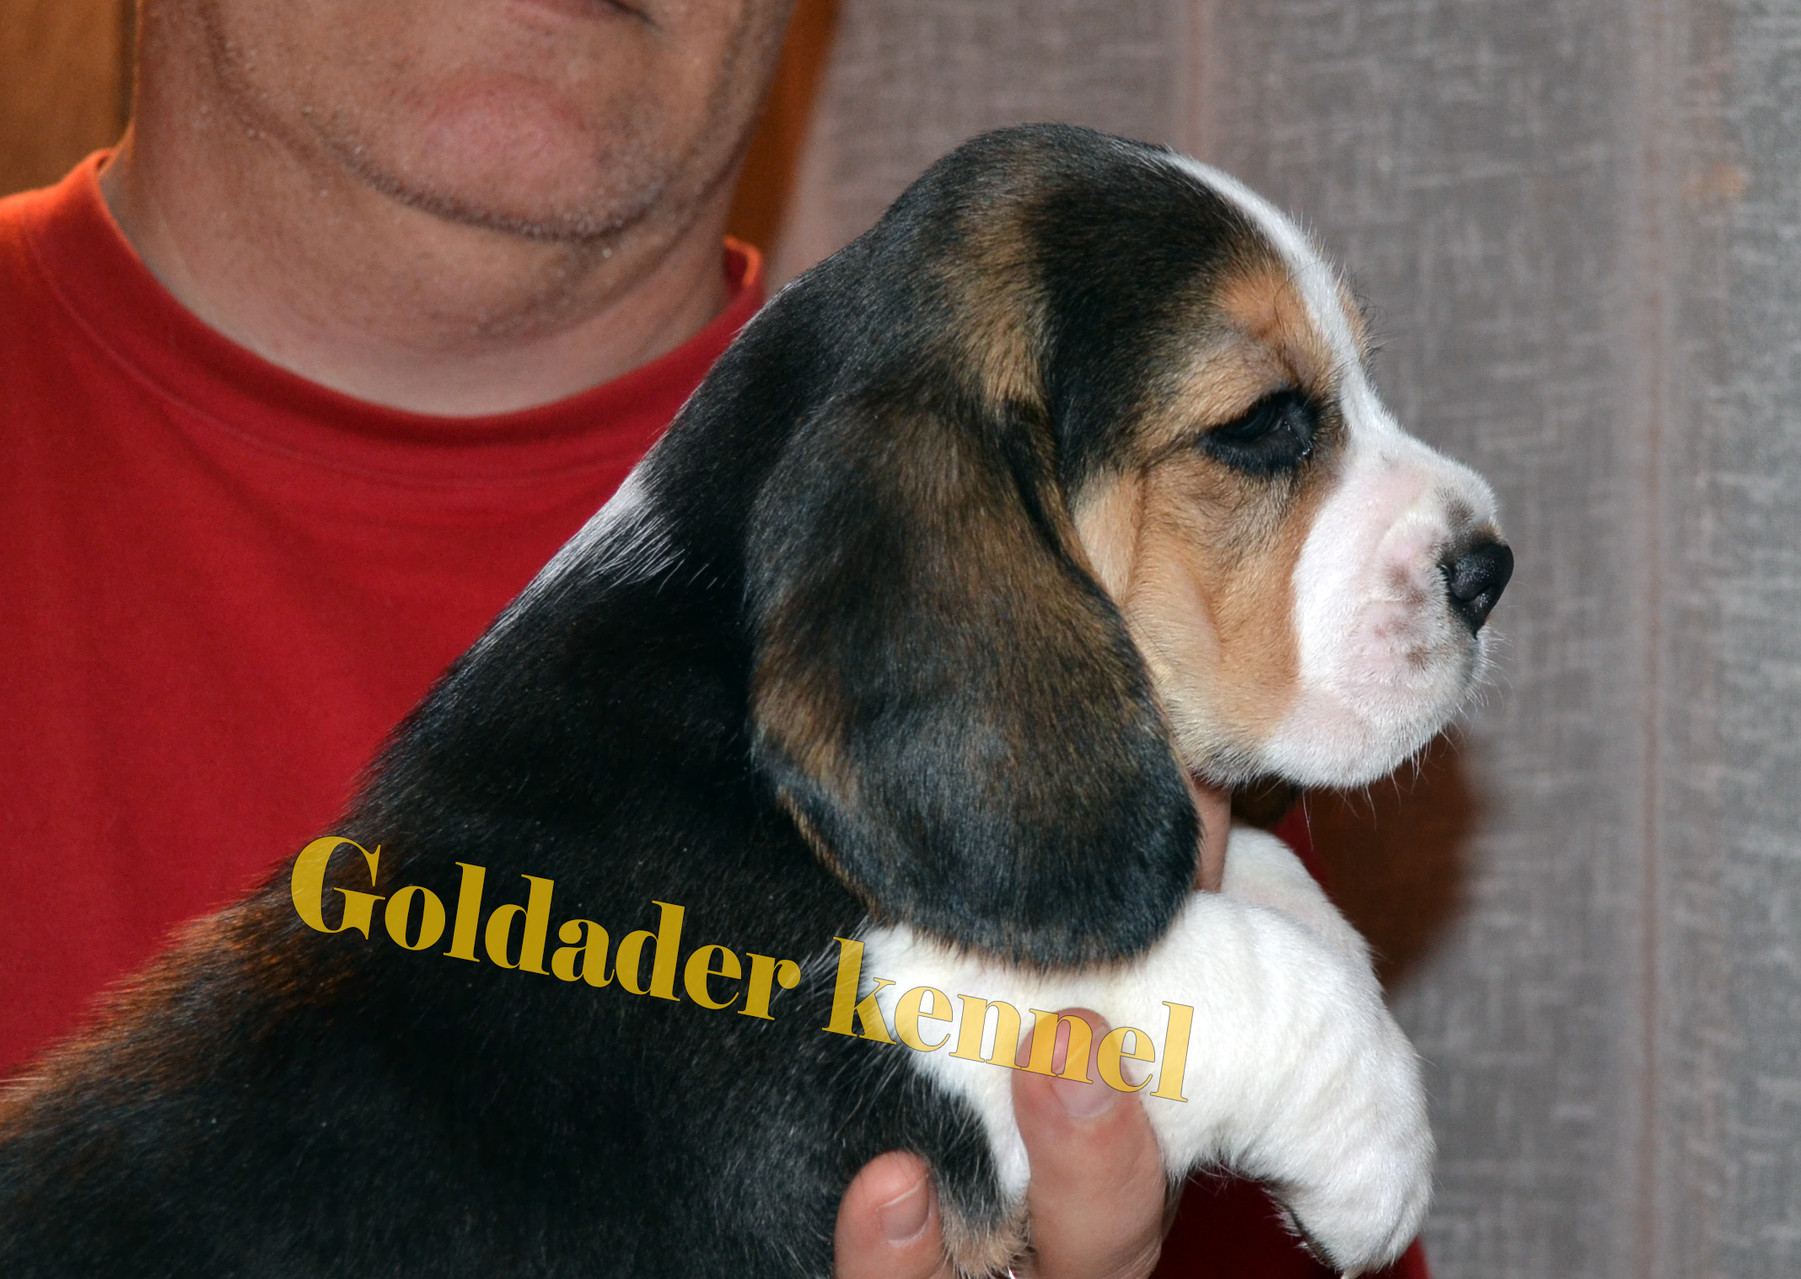 Goldader Vertu, 5weeks